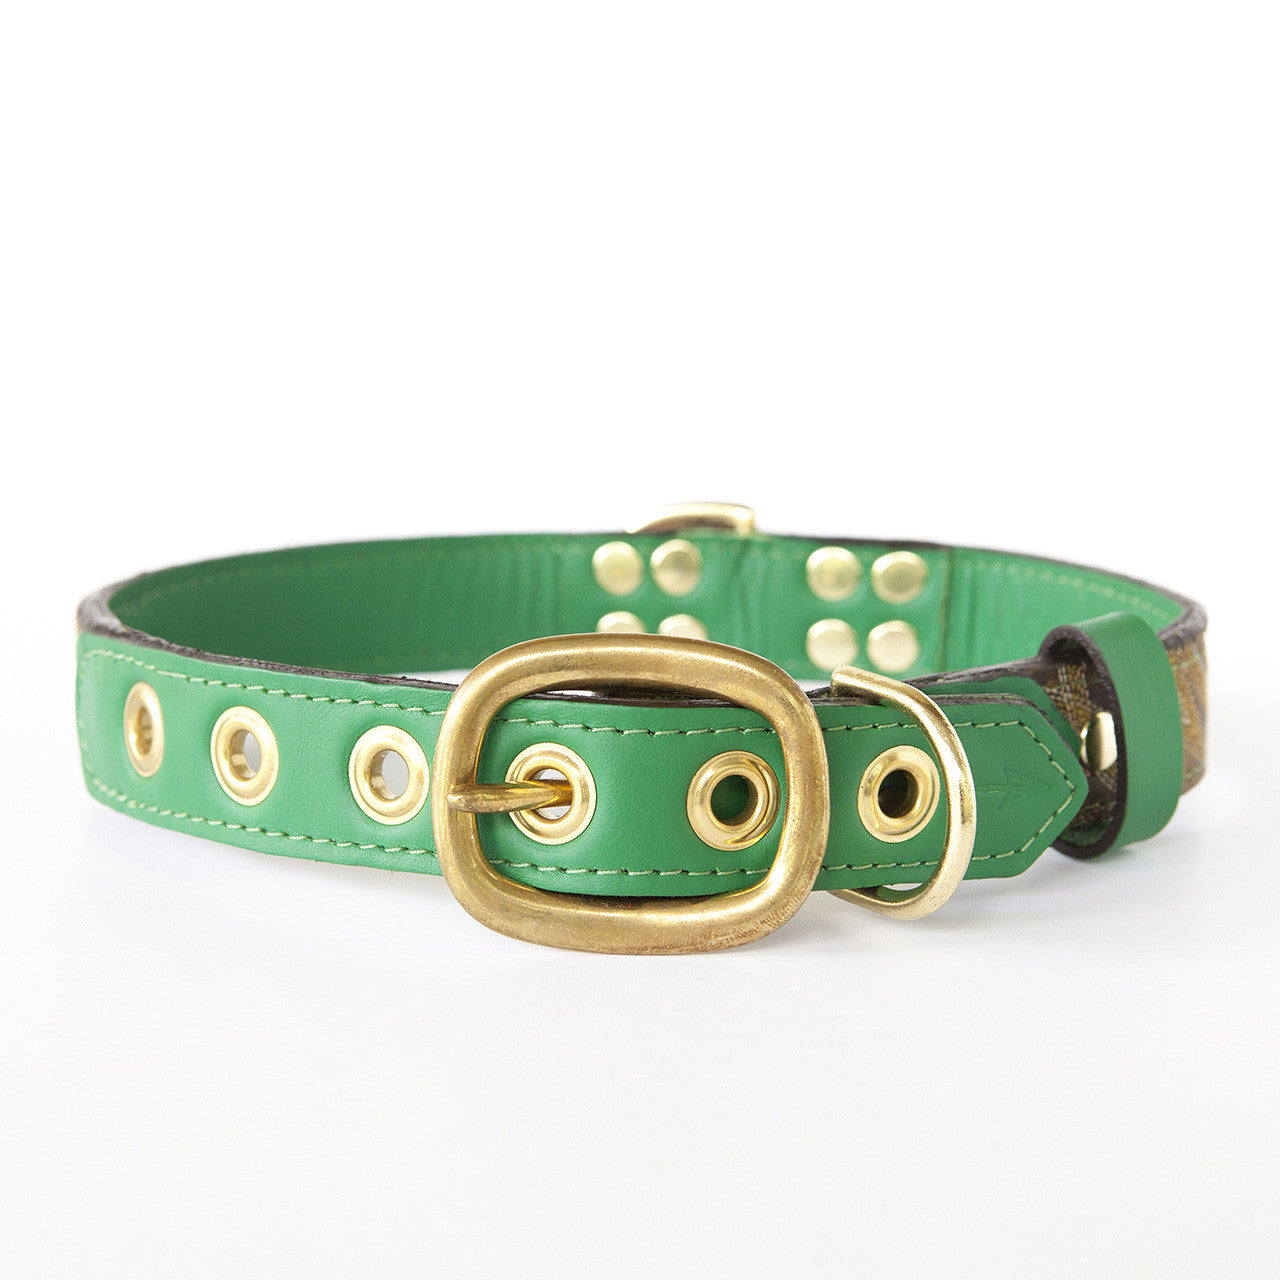 Emerald Green Dog Collar with Dark Brown Leather + Yellow and Tan Stitching (back view)